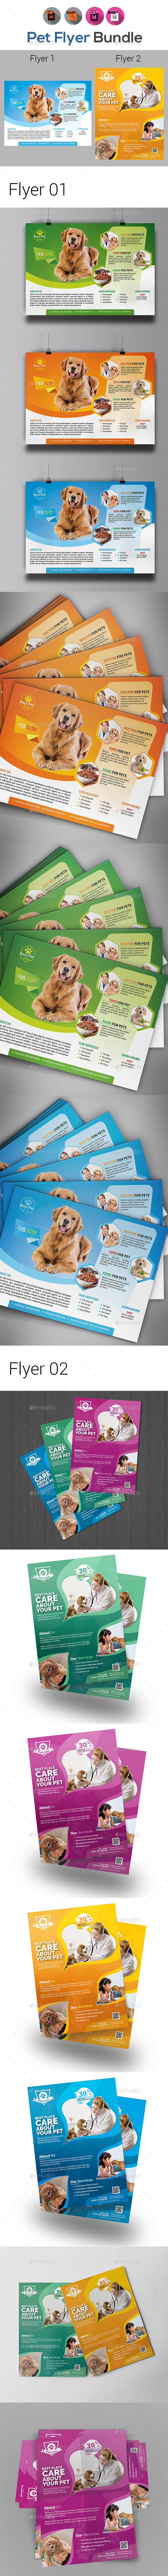 Pets Flyer Template Bundle - Corporate Flyers